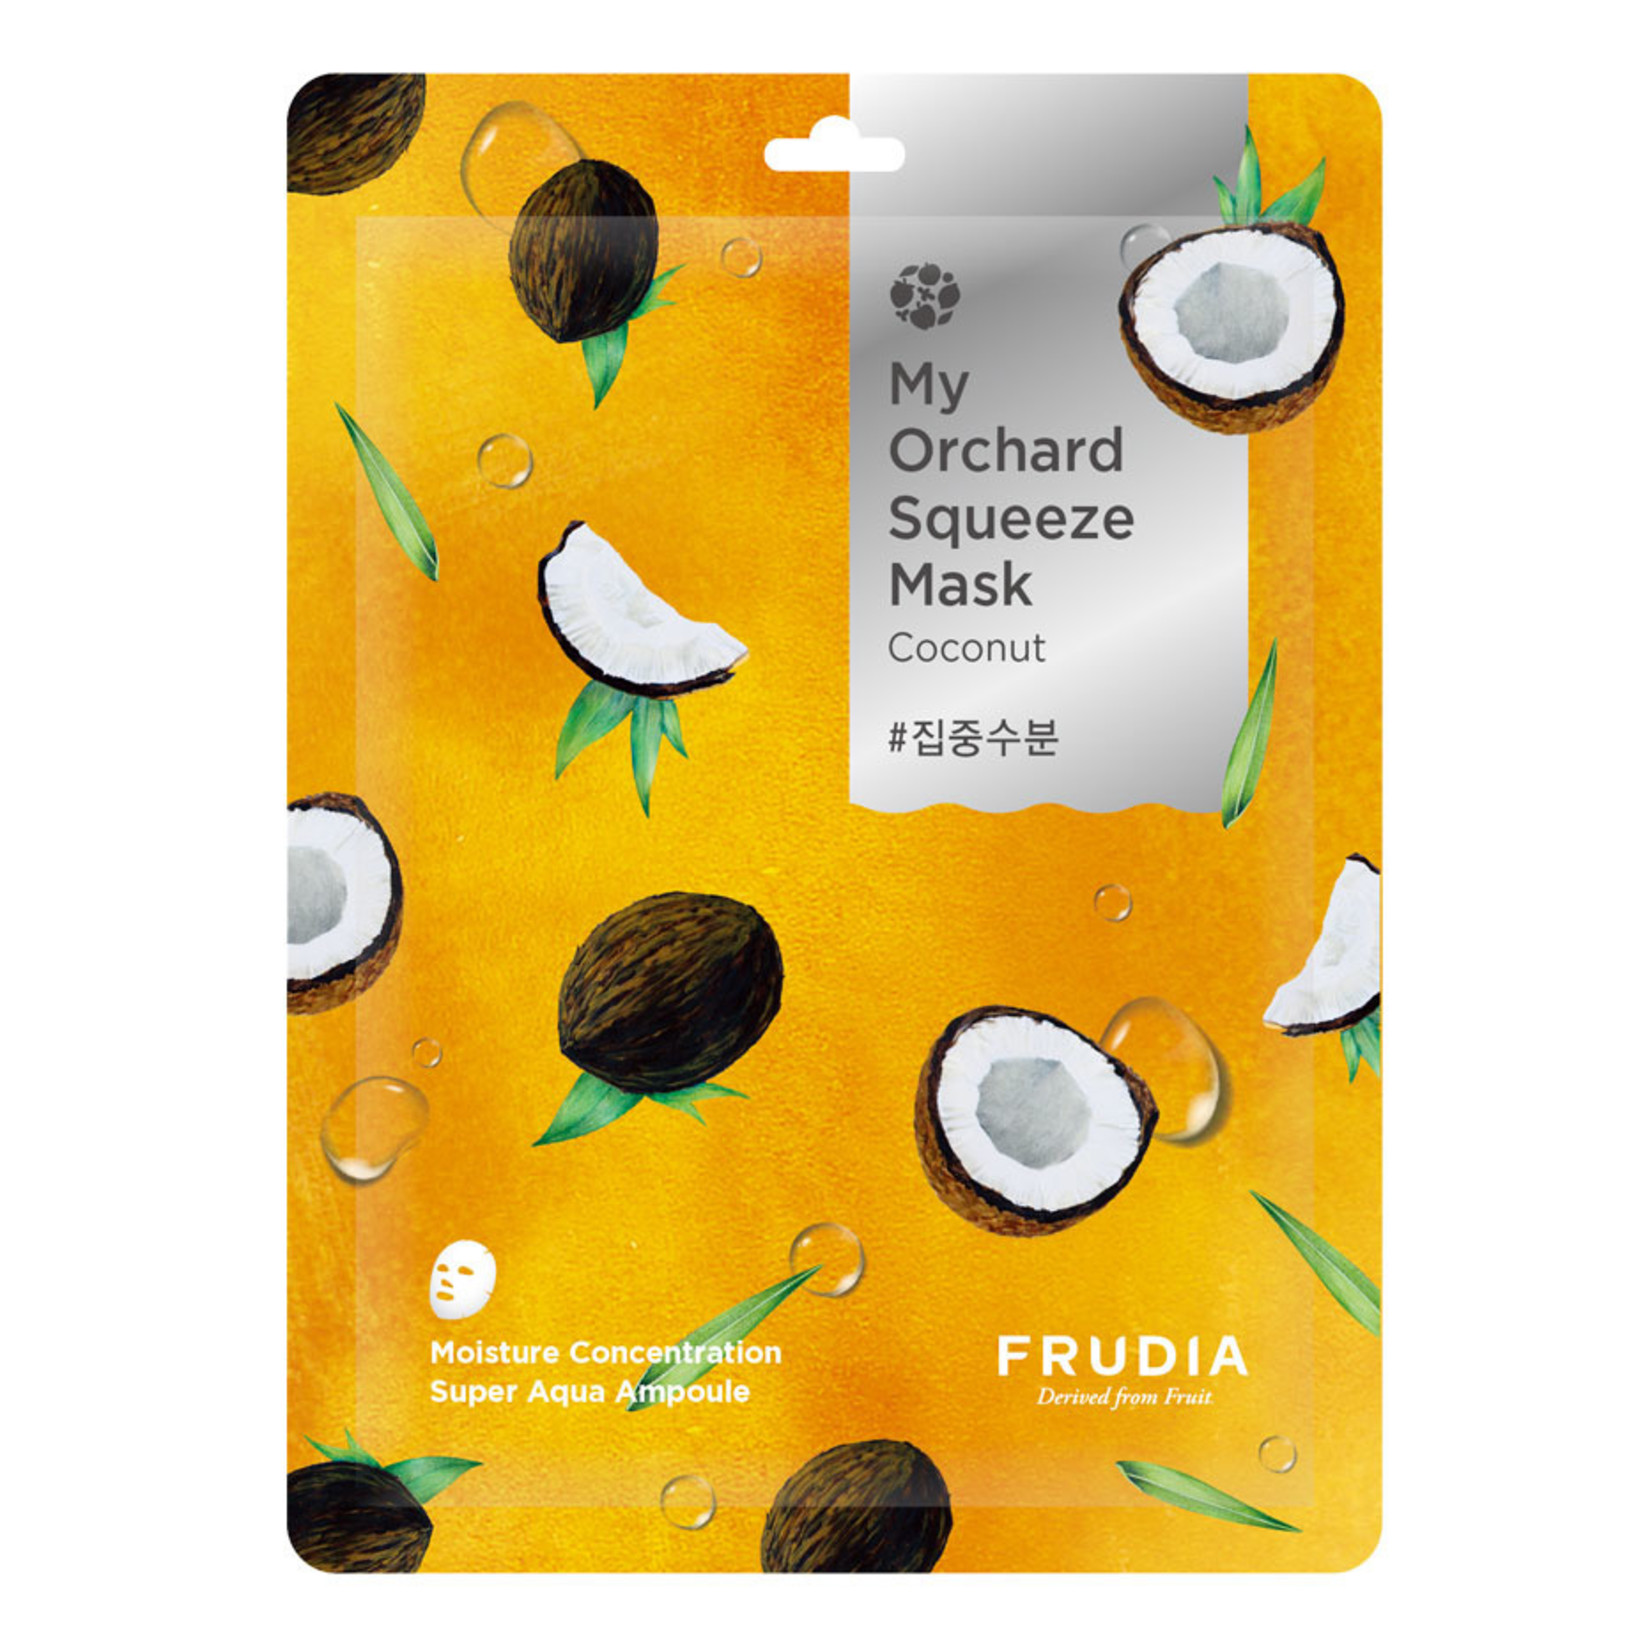 Frudia My Orchard Squeeze Mask Coconut 10pcs